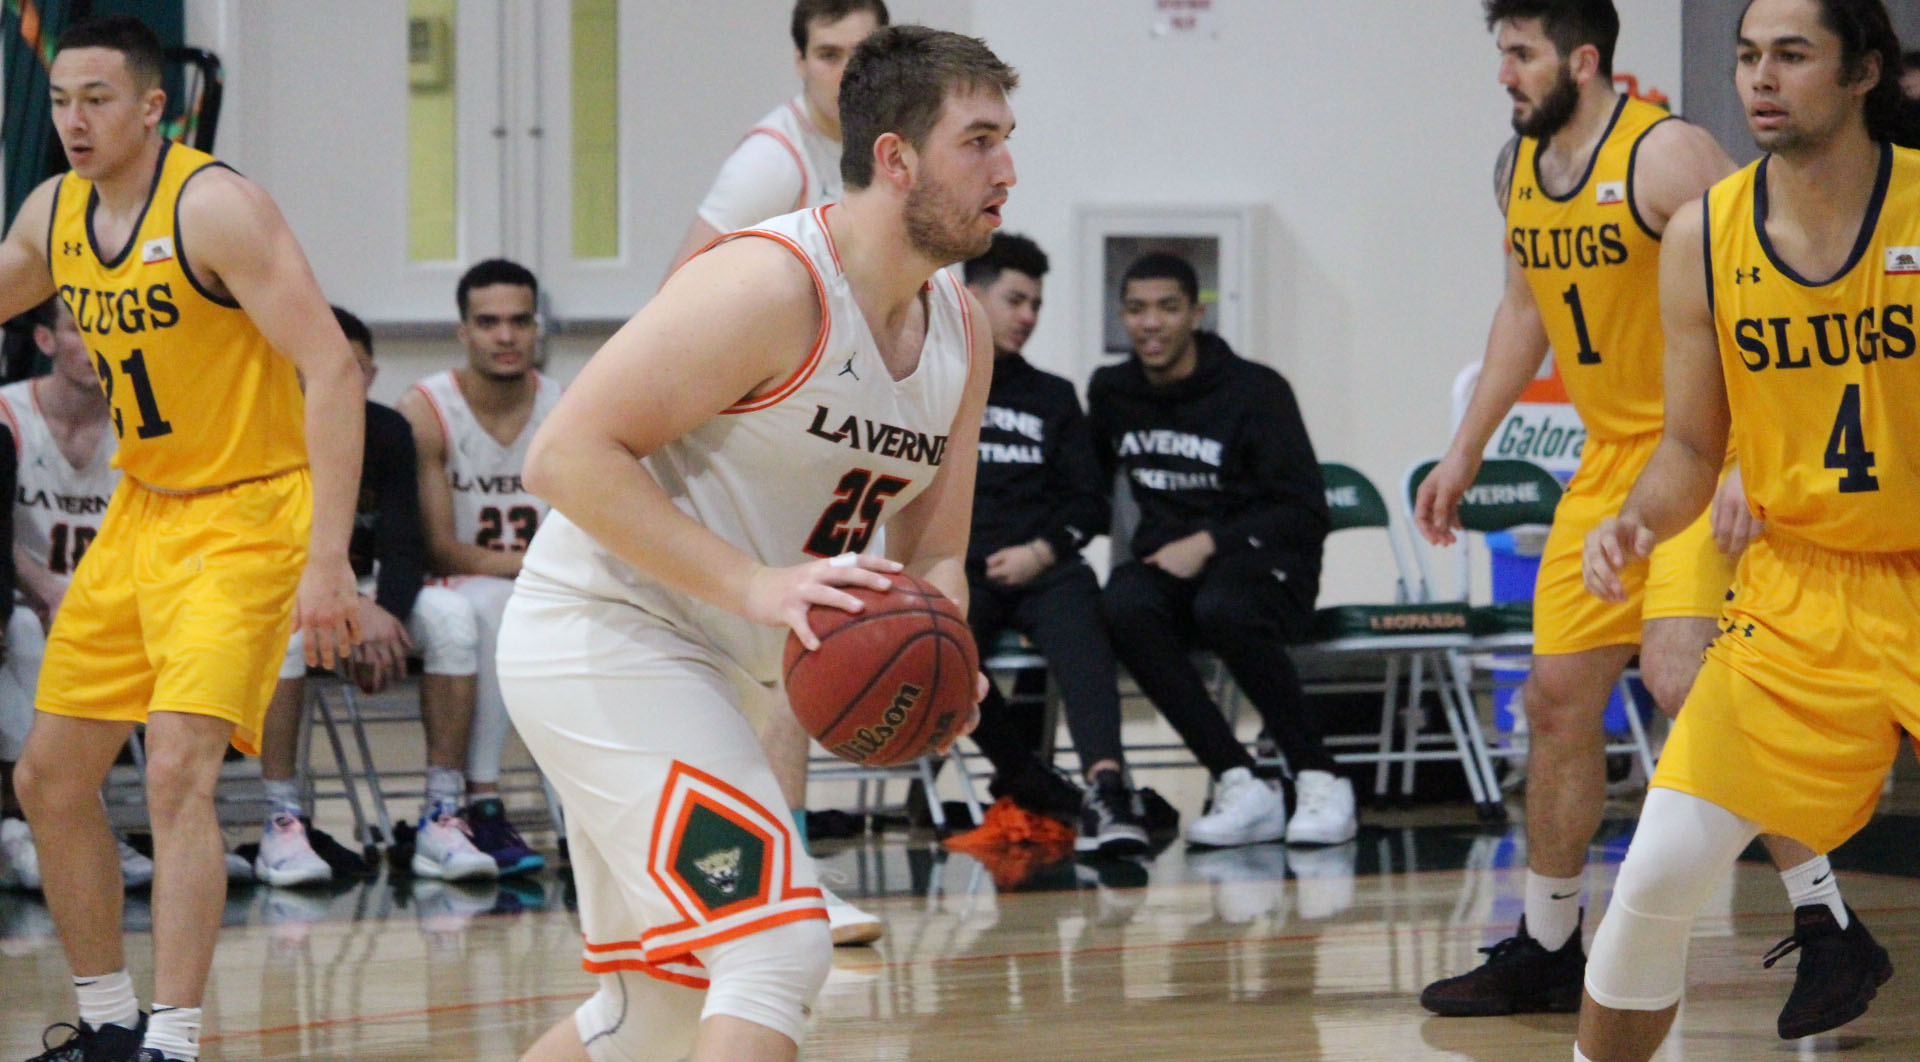 Men's Basketball closes out season at Redlands